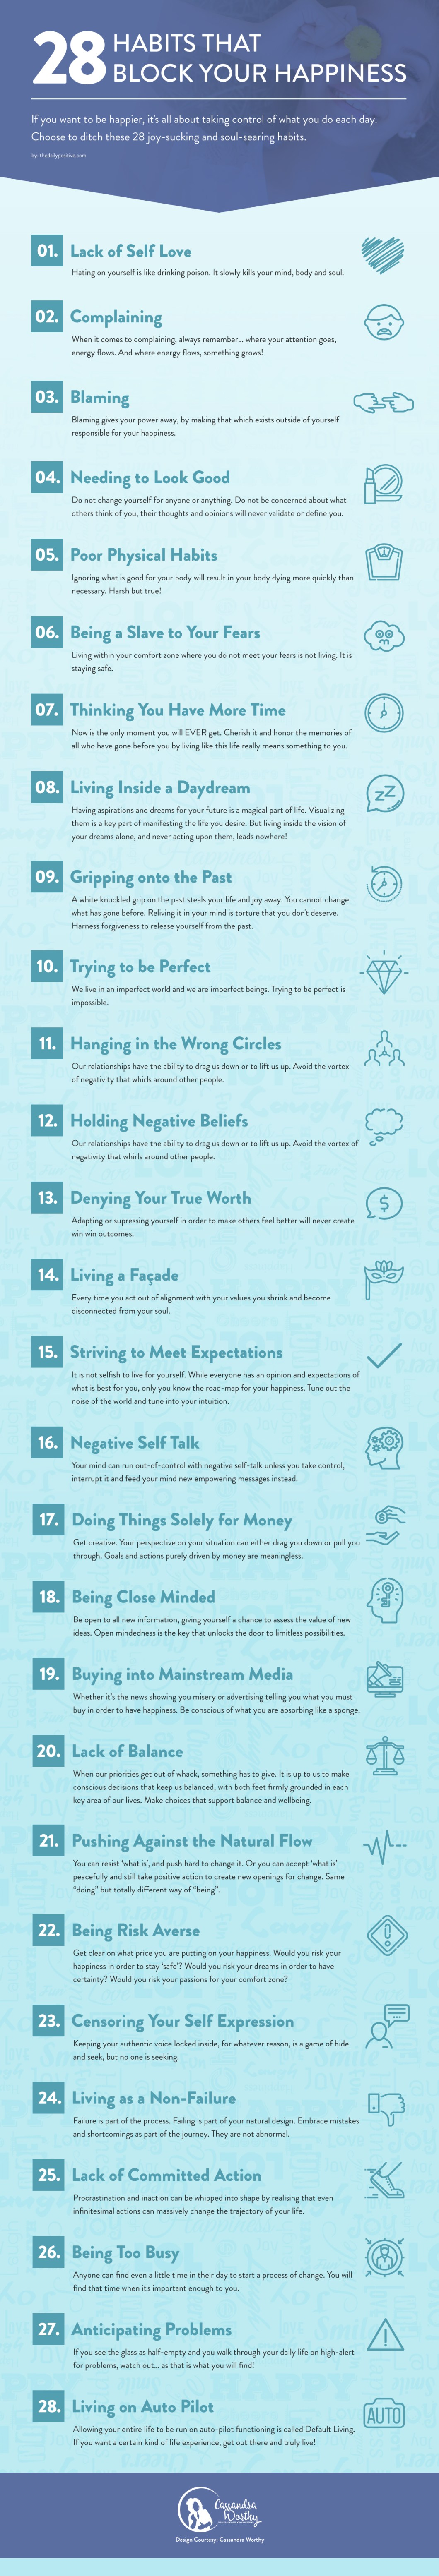 Happiness is an Inside Job- 28 Habits that Block Happiness - Infographic